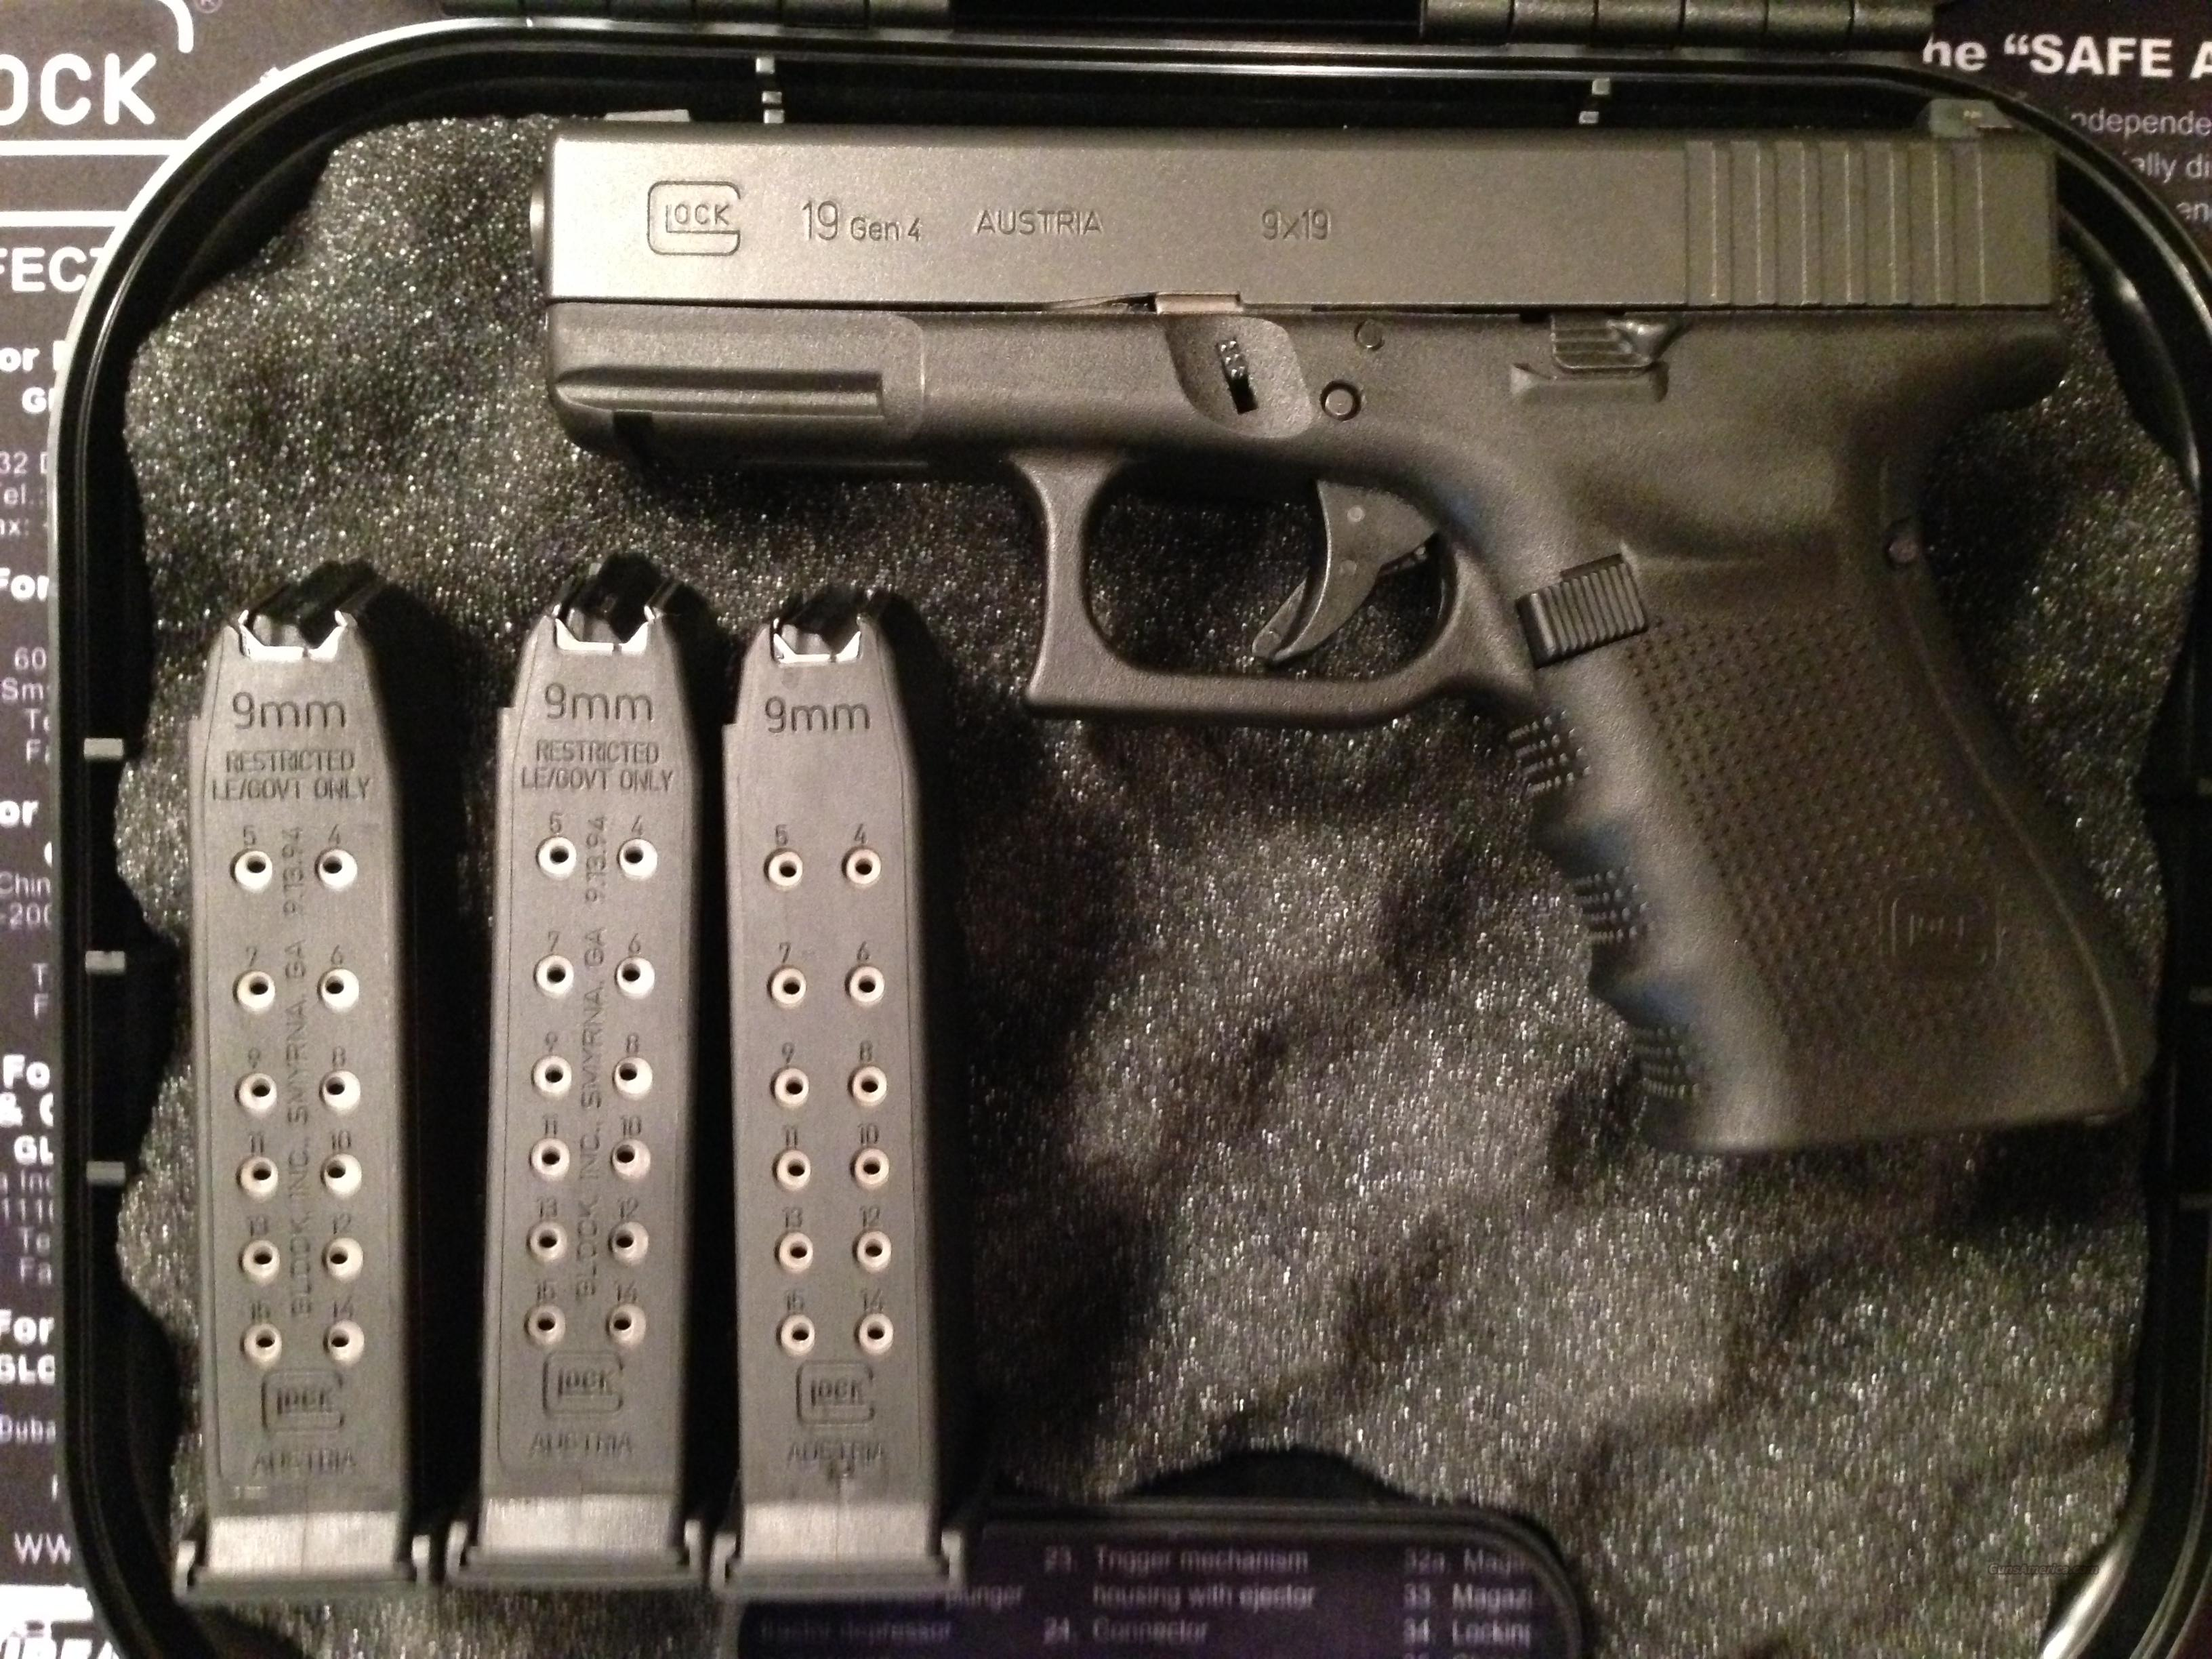 Glock 19 Generation 4 with w/Night Sights  Guns > Pistols > Glock Pistols > 19